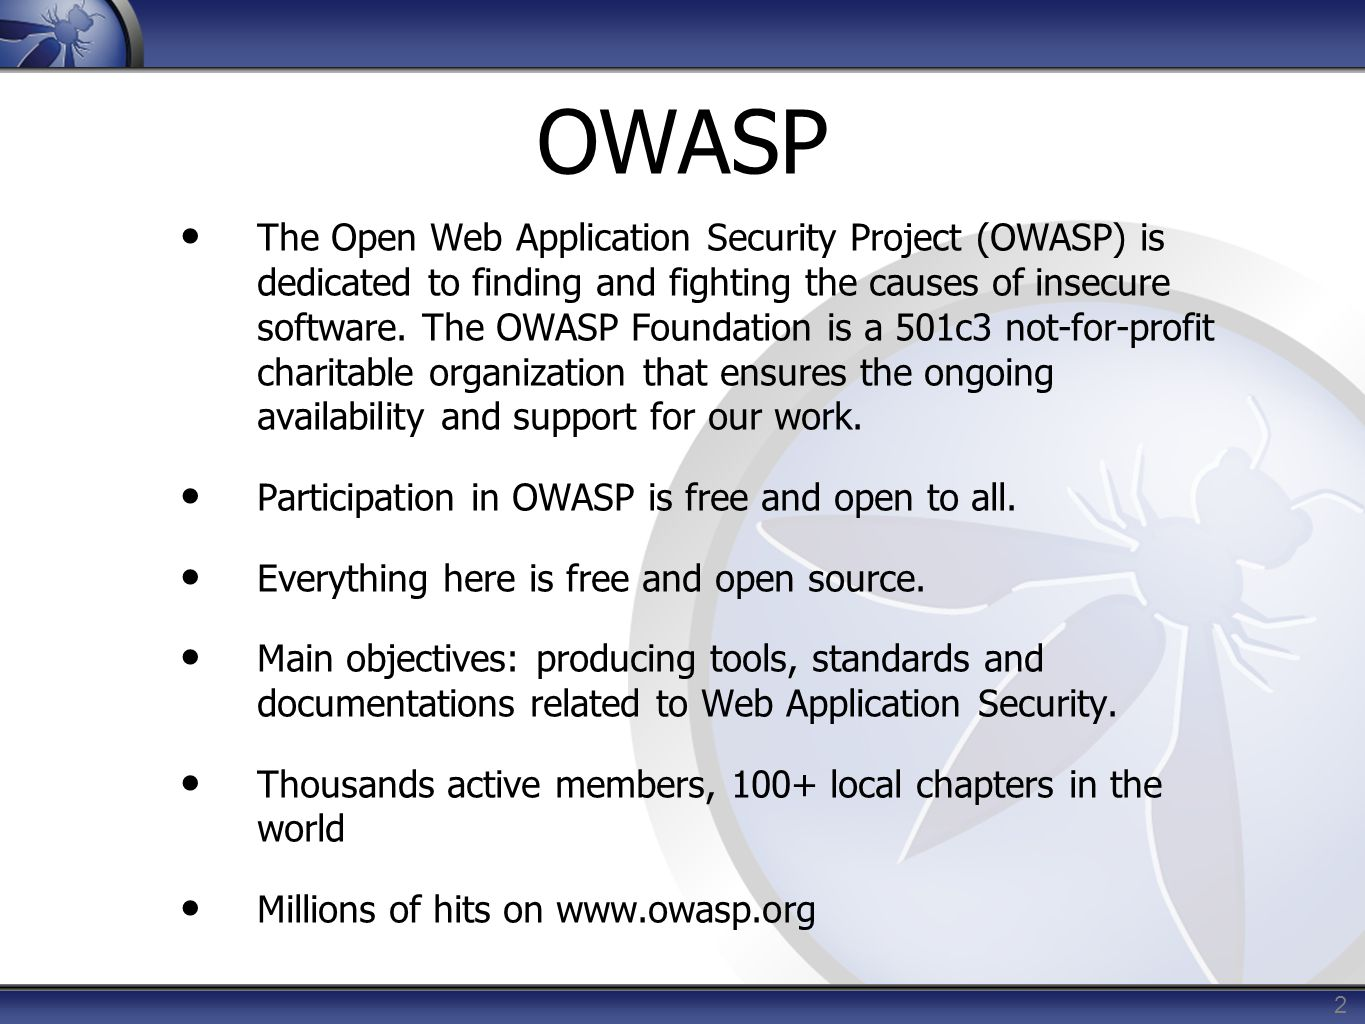 2 OWASP The Open Web Application Security Project (OWASP) is dedicated to finding and fighting the causes of insecure software.